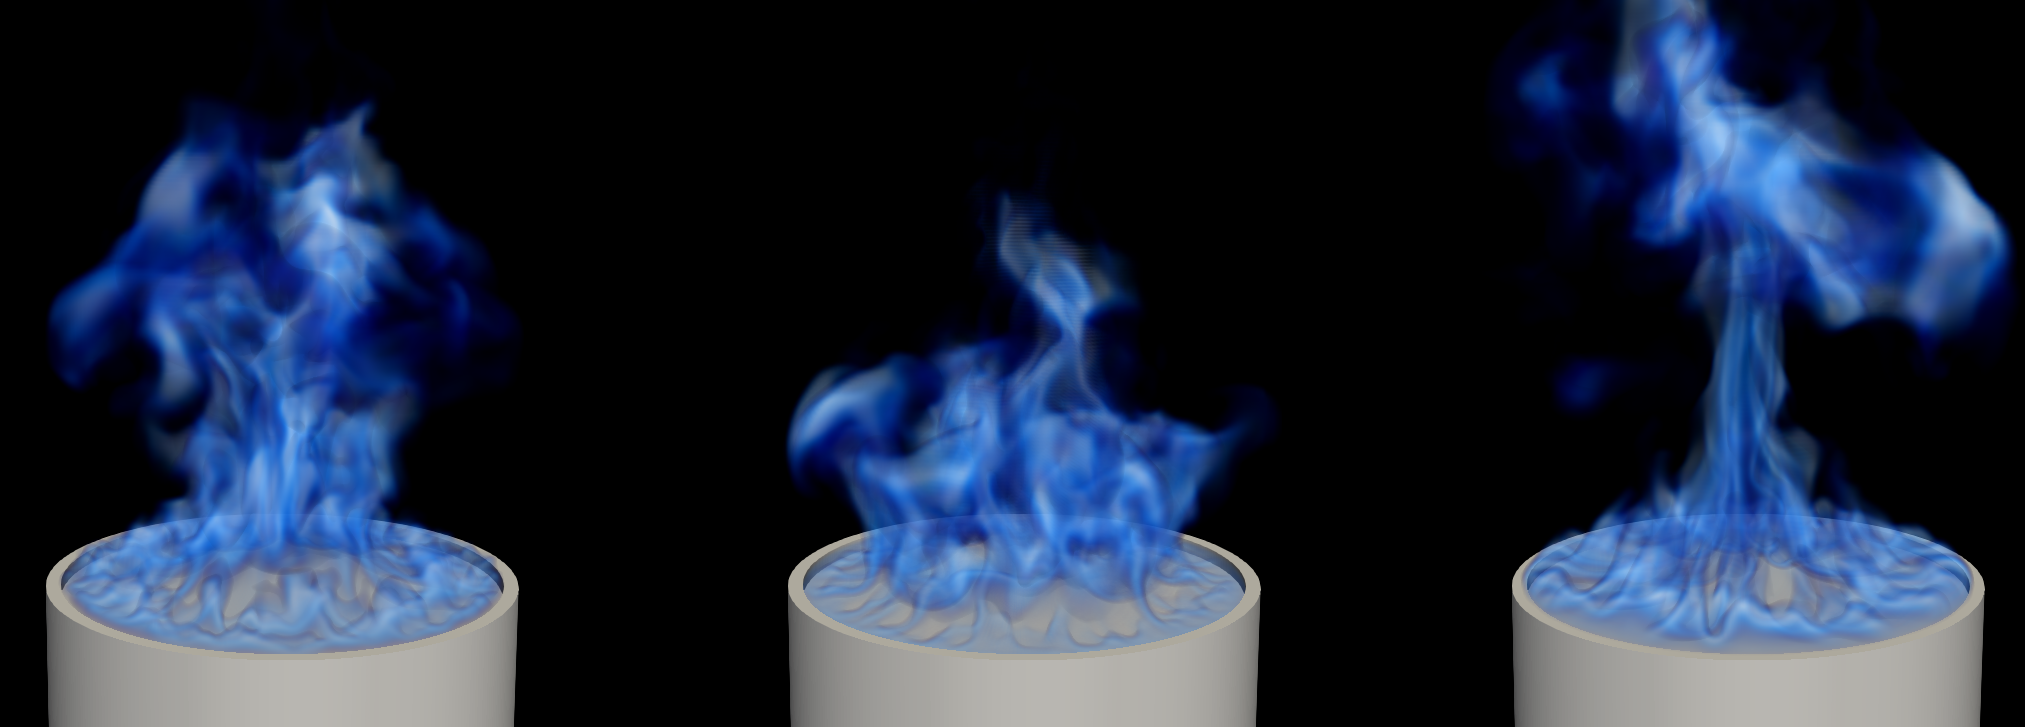 A sample of instantaneous snapshots of the simulated methanol pool flame. The flame is visualized using volume rendering of the high temperature region (defined as the region where temperatures are larger than 800 K).